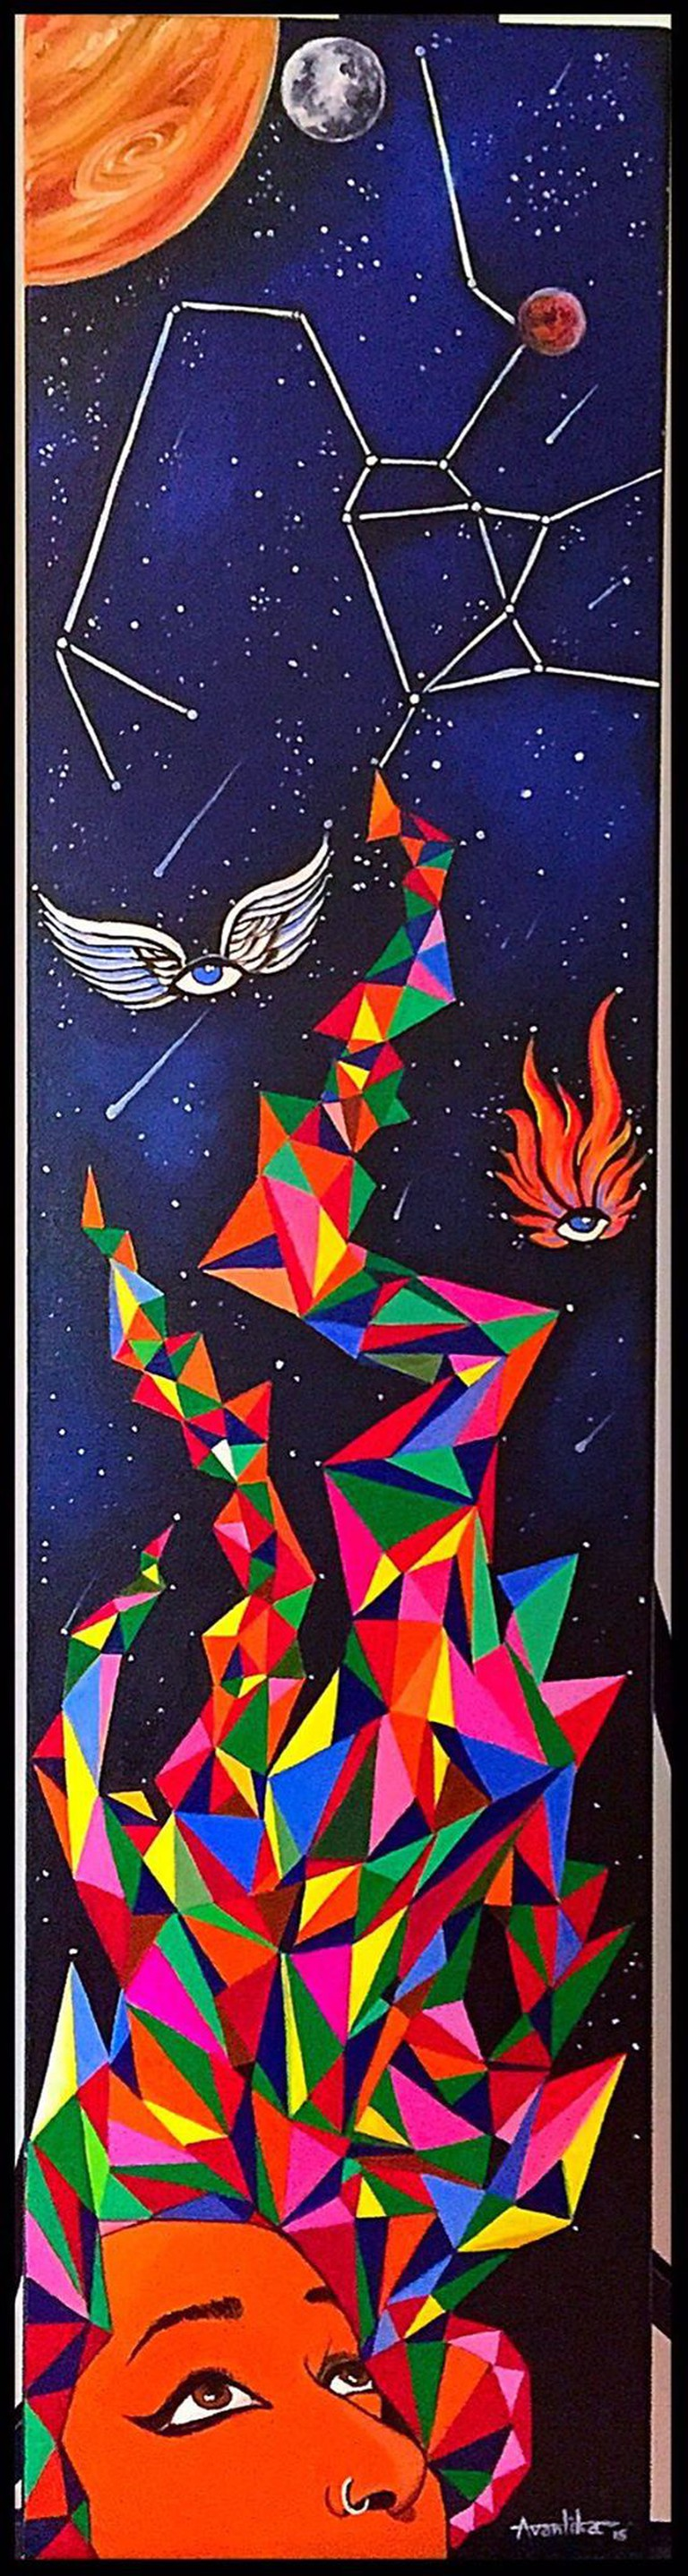 'Searching for my Destiny in the stars' , Acrylic on Canvas.Astrology Series. | Courtesy Avantika Mathur